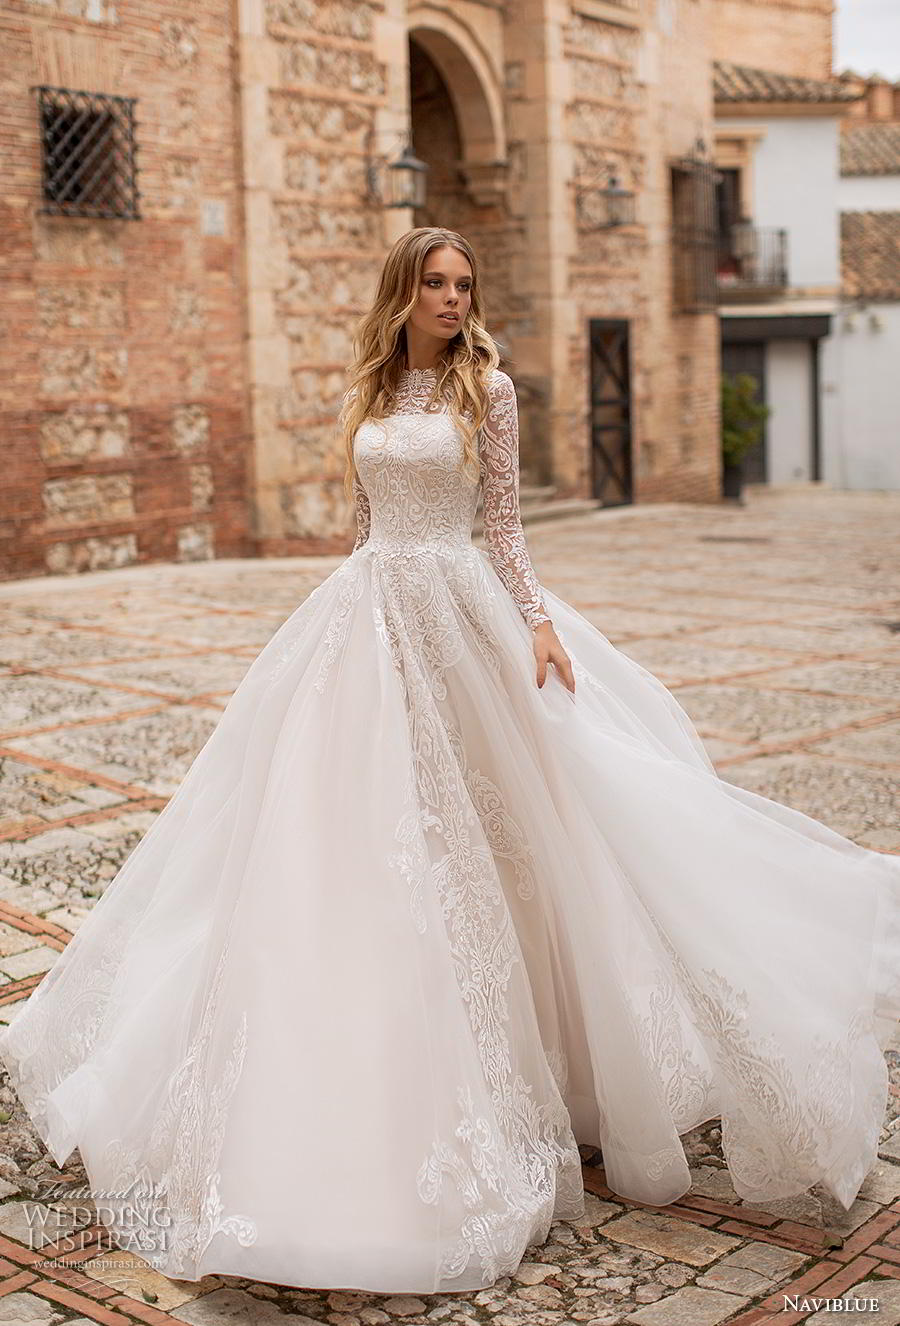 e9adac9f52 naviblue 2019 bridal long sleeves illusion bateau straight across neckline  heavily embellished bodice romantic a line